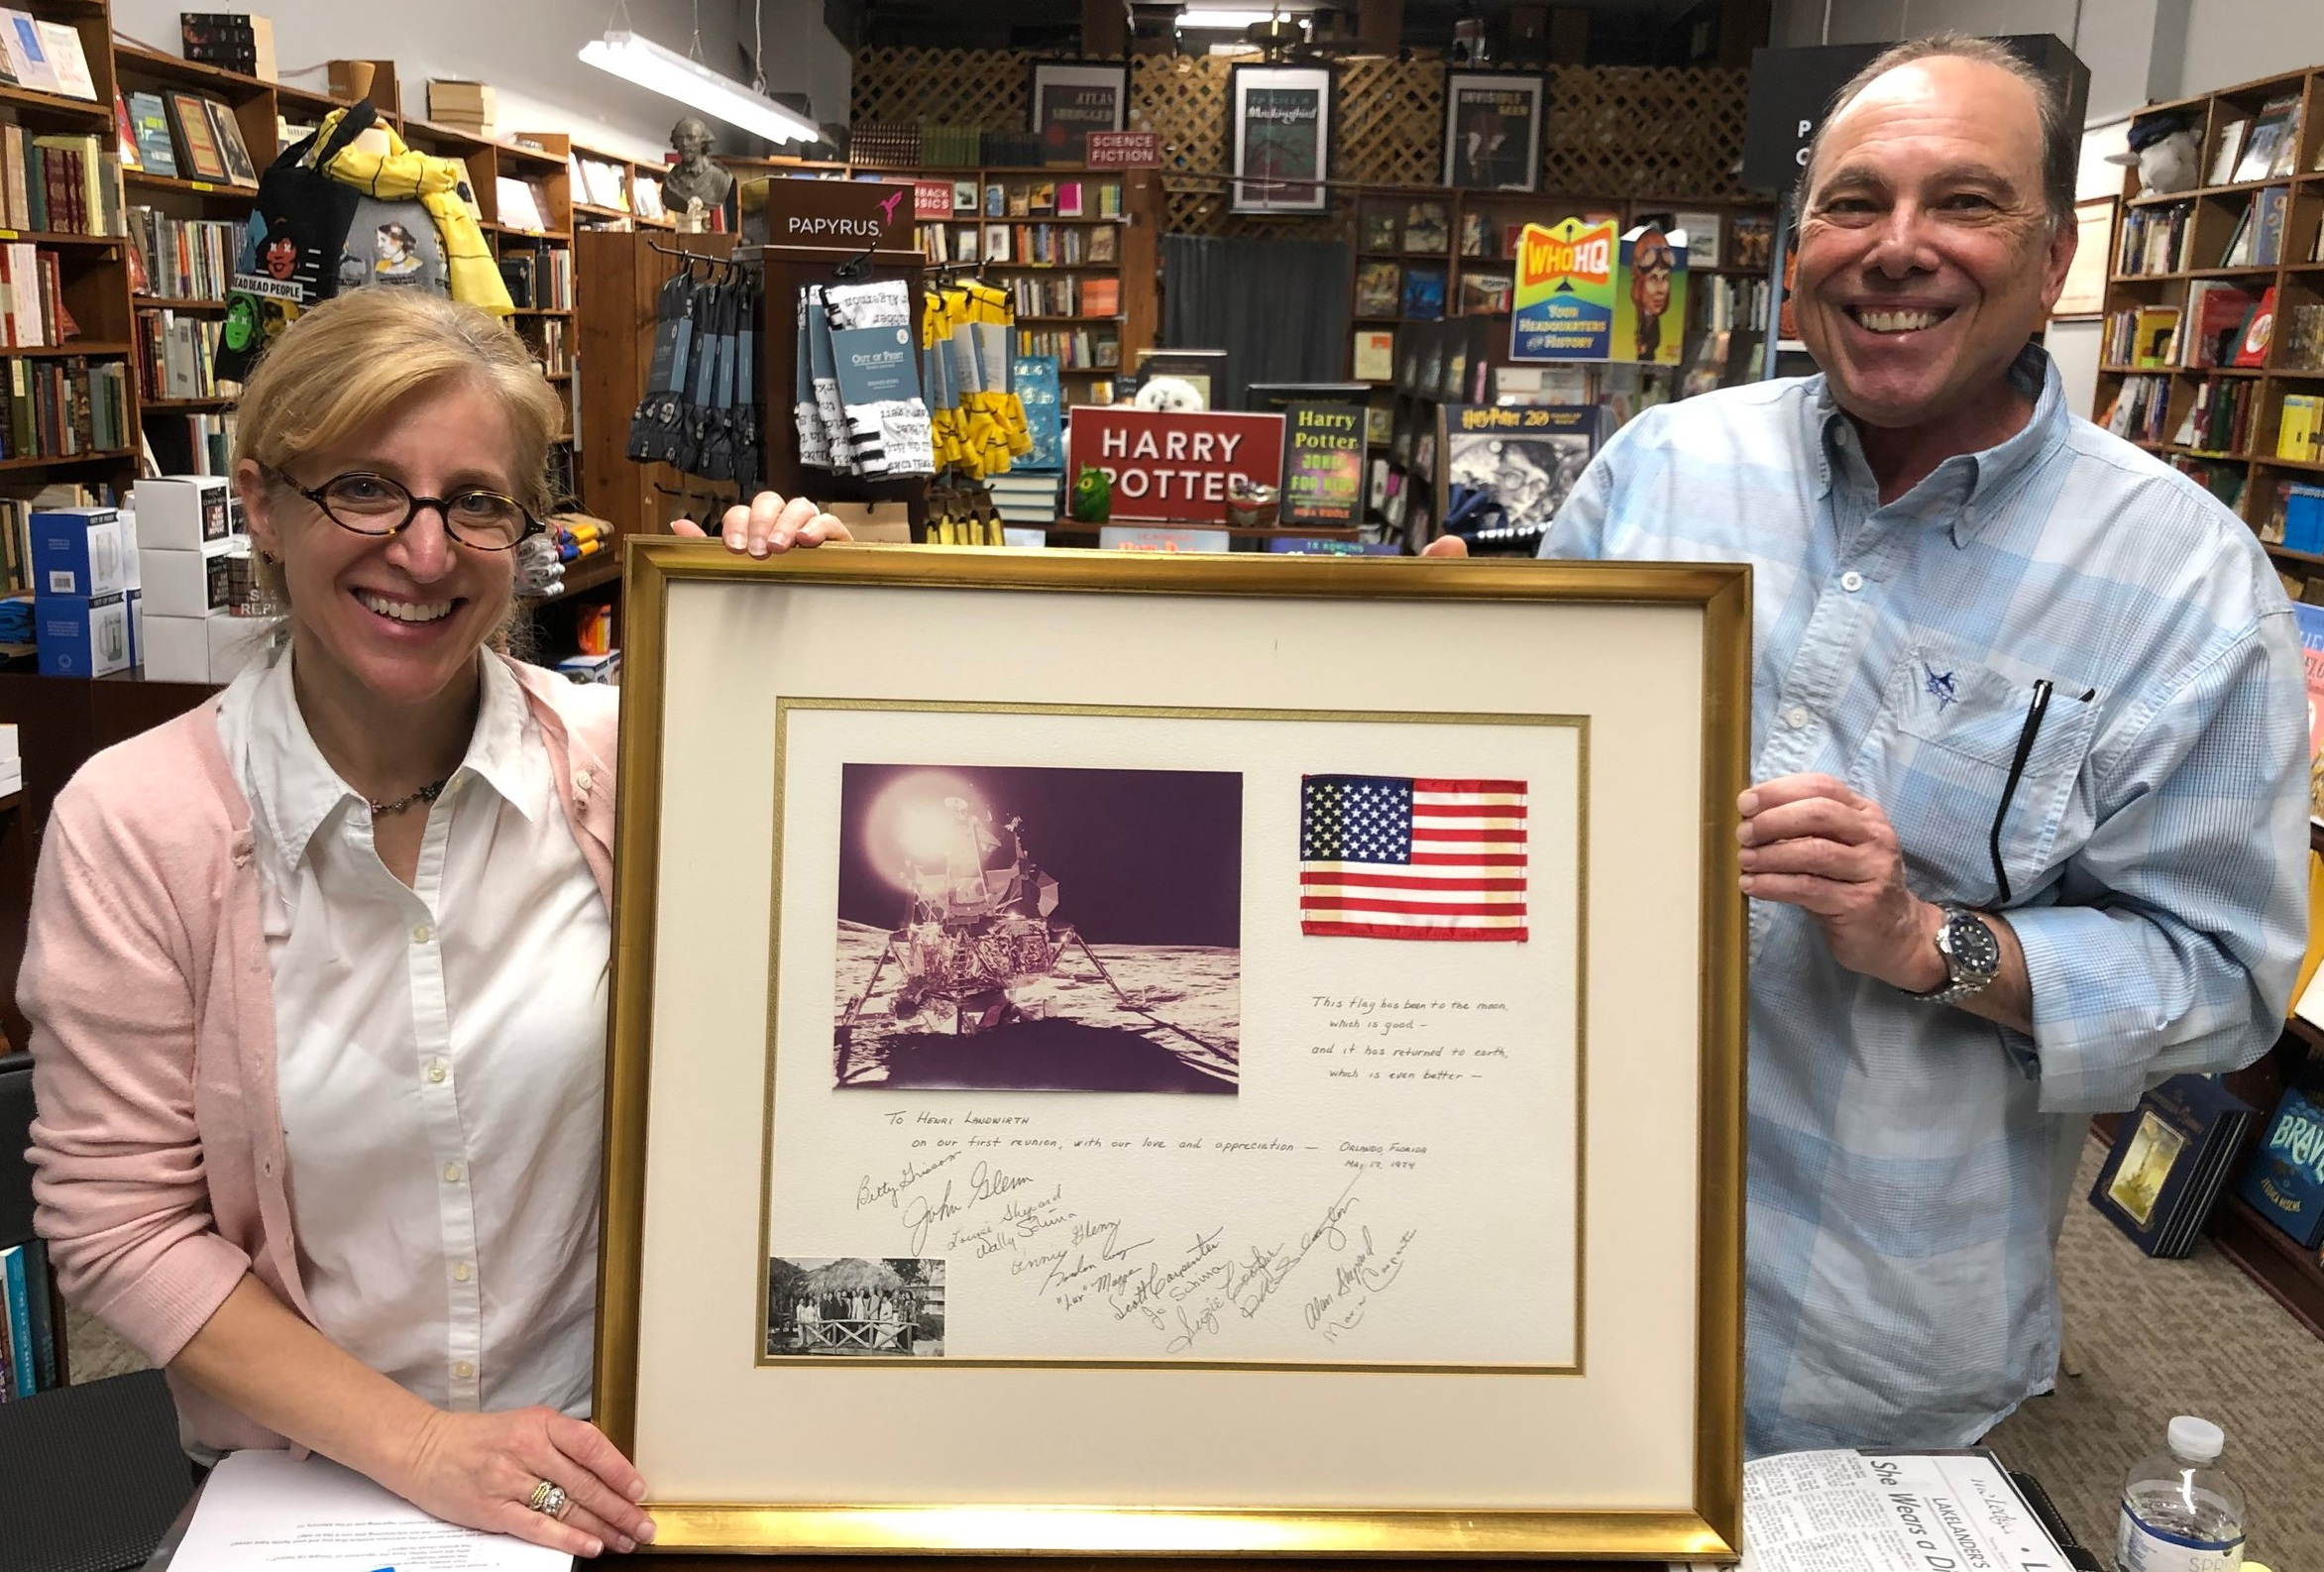 Greg Landwirth shared his family's NASA stellar memorabilia during our  The Right Stuff  book discussion at San Marco Books & More.